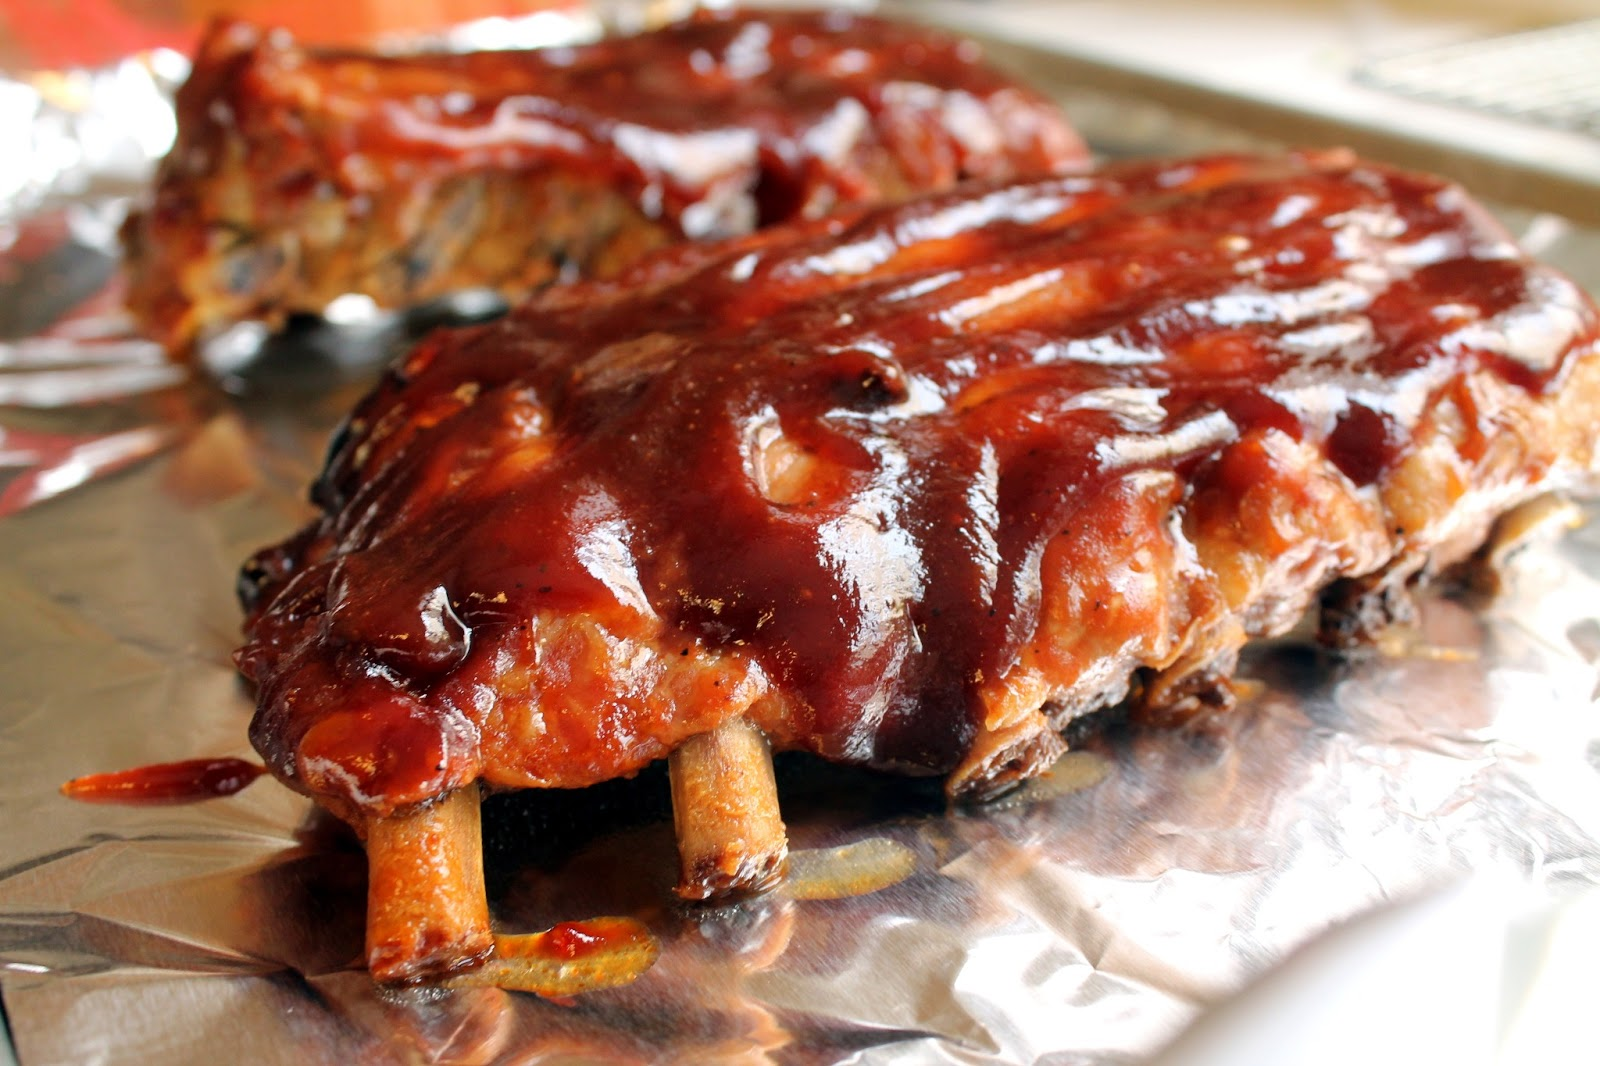 Ribs Amanda S Co...Y Style Barbecued Ribs Recipe In Crock Pot